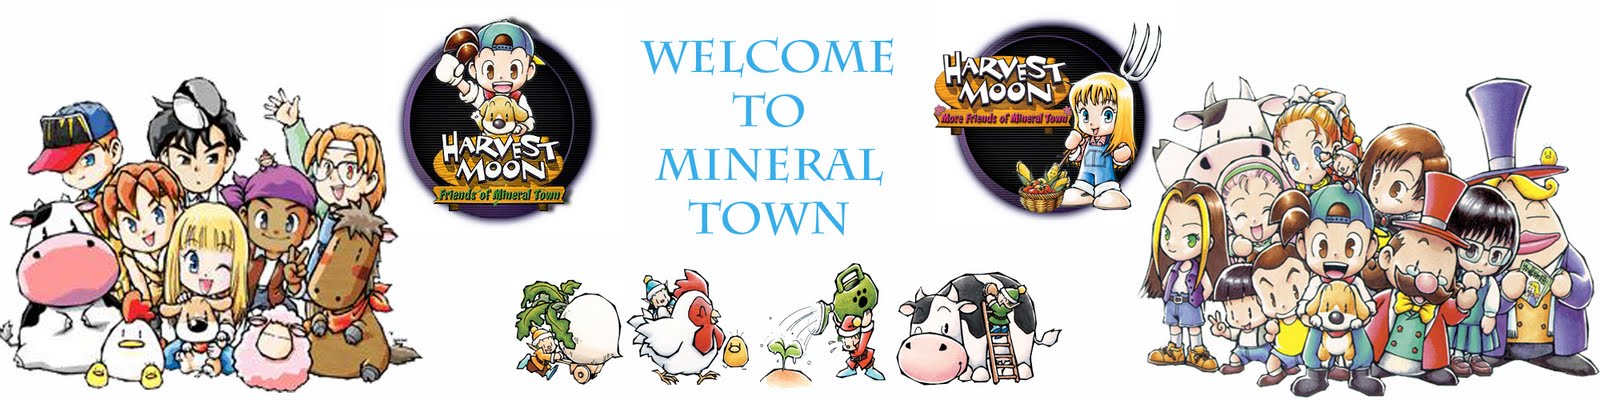 friends of mineral town guide